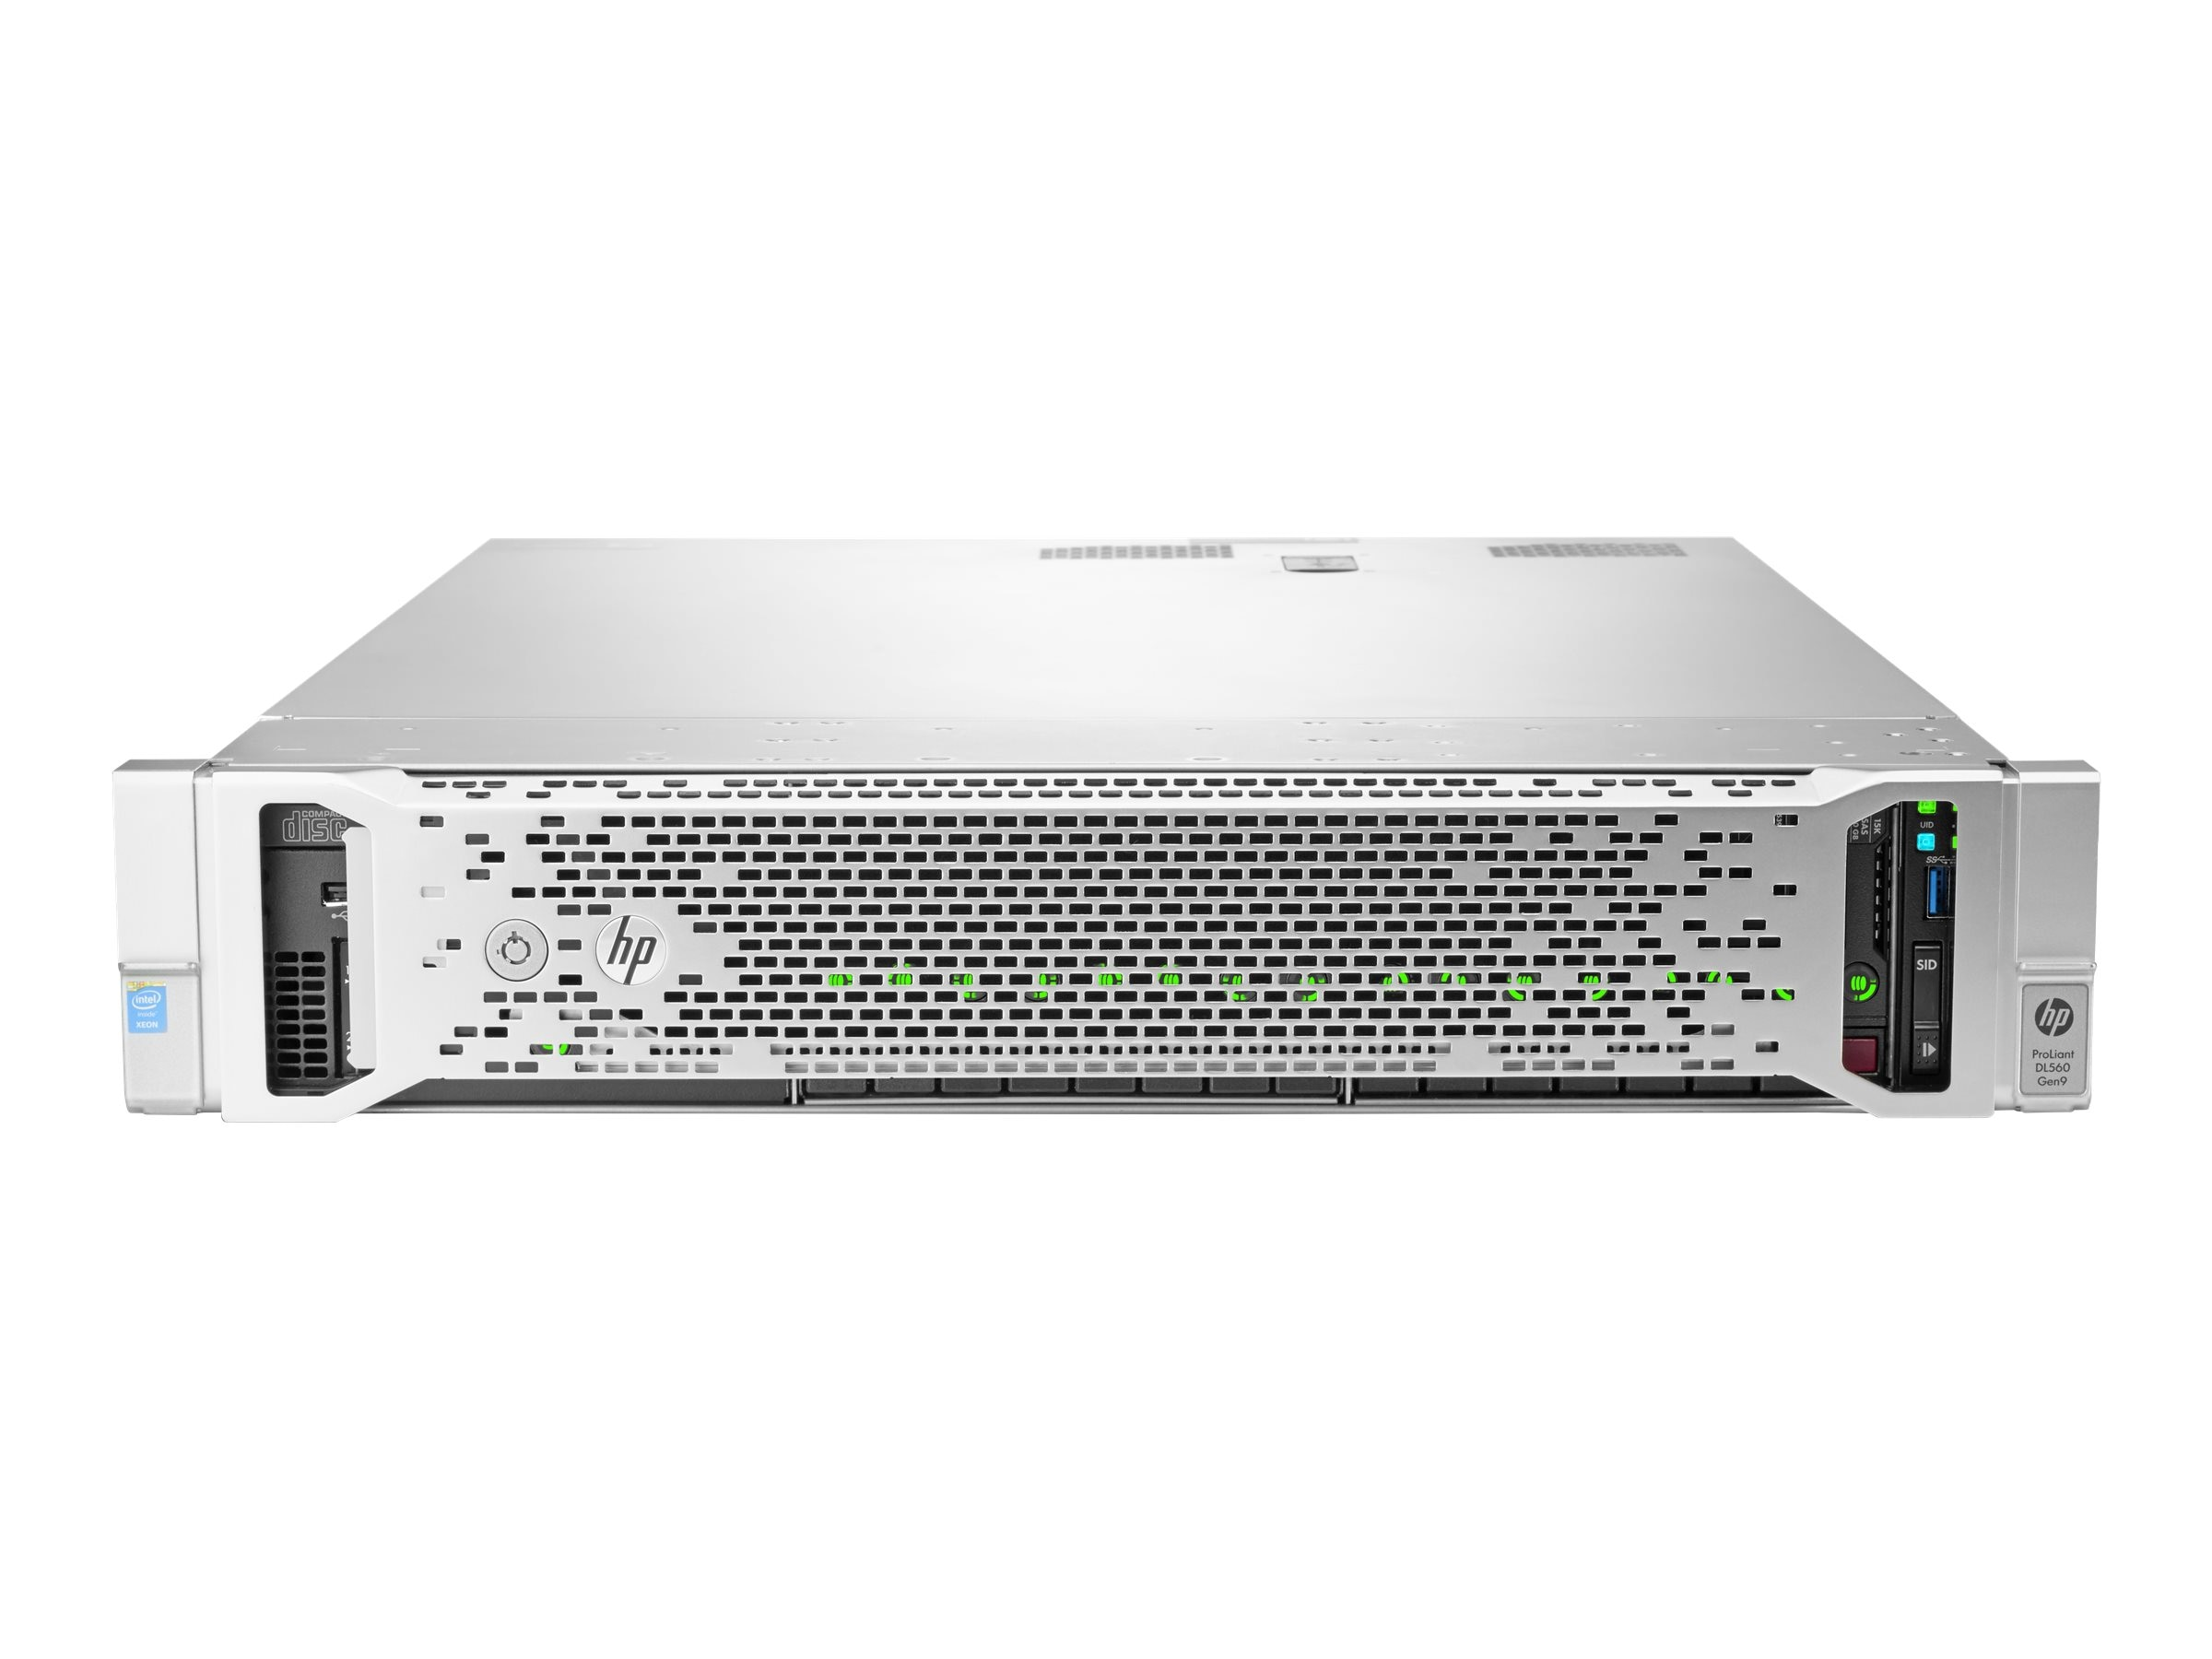 HPE ProLiant DL560 Gen9 Intel 1.7GHz Xeon, 741064-B21